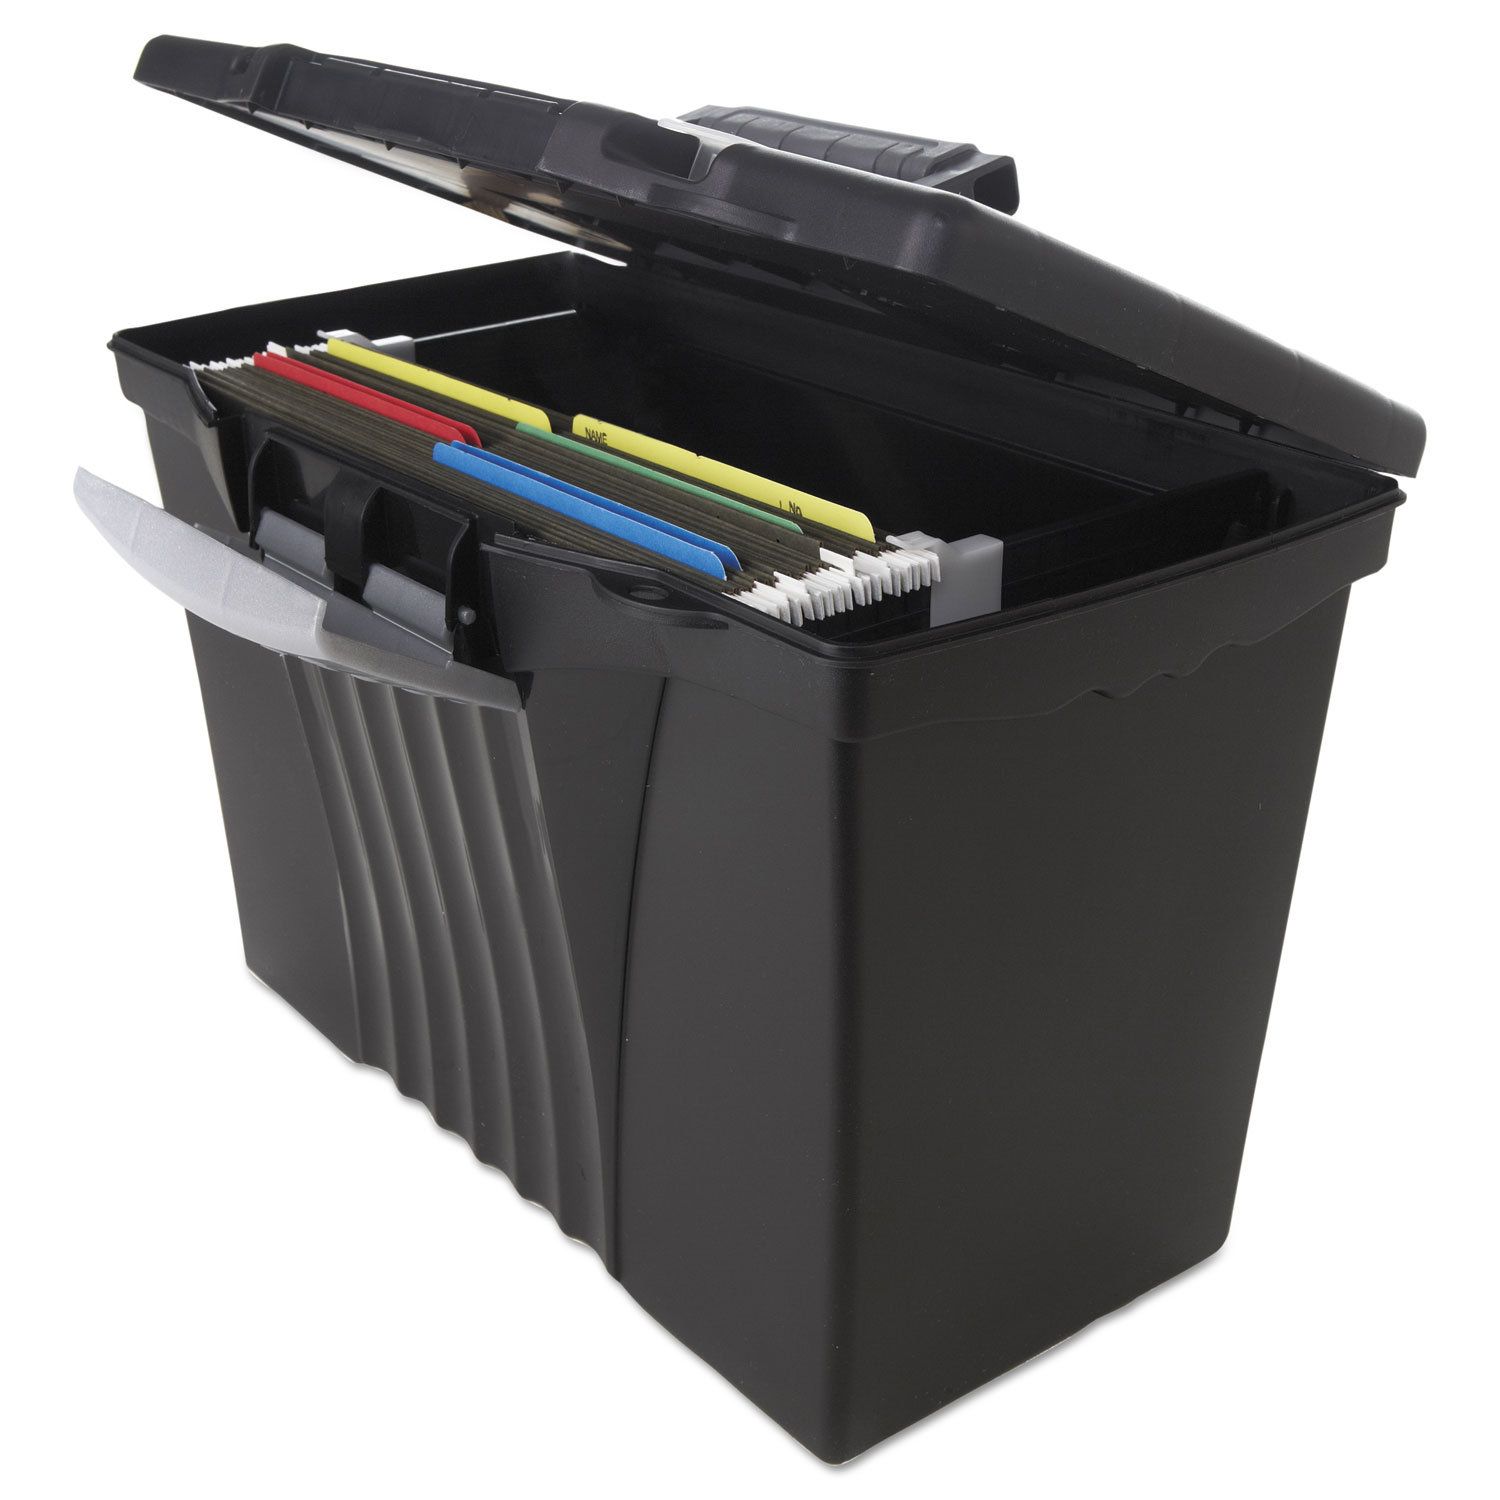 Portable File Storage Box W Organizer Lid By Storex